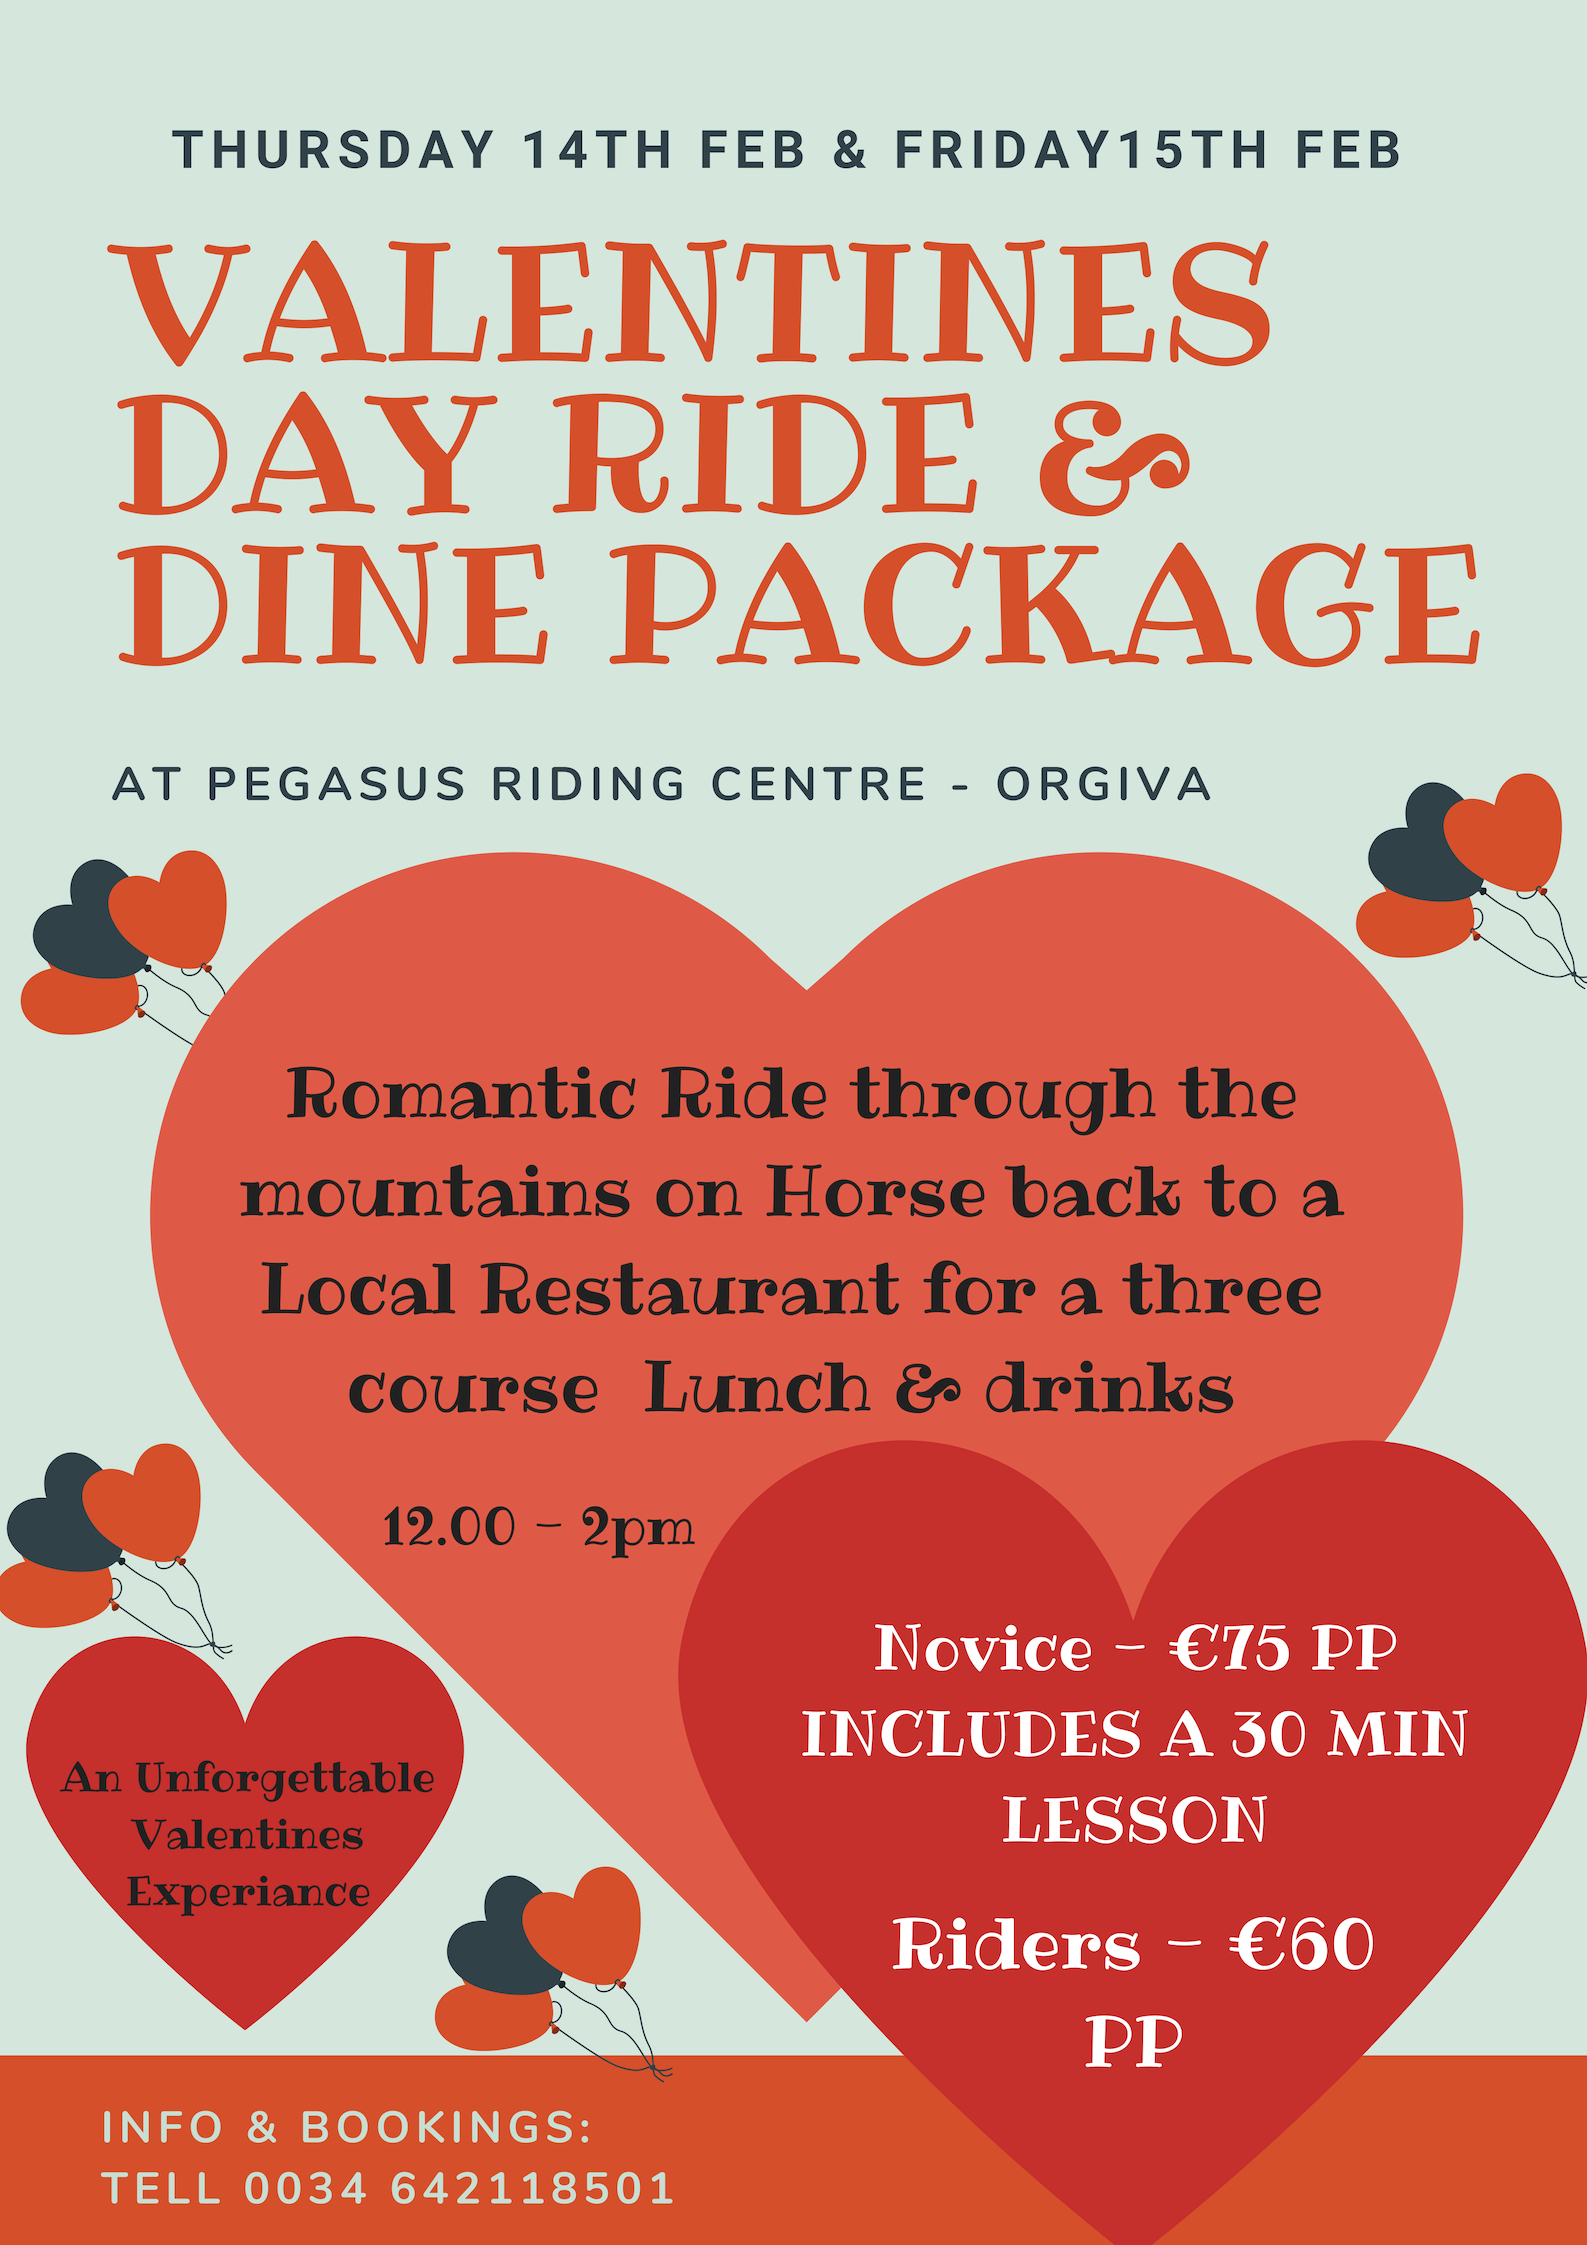 Valentines Day Ride & Dine Package